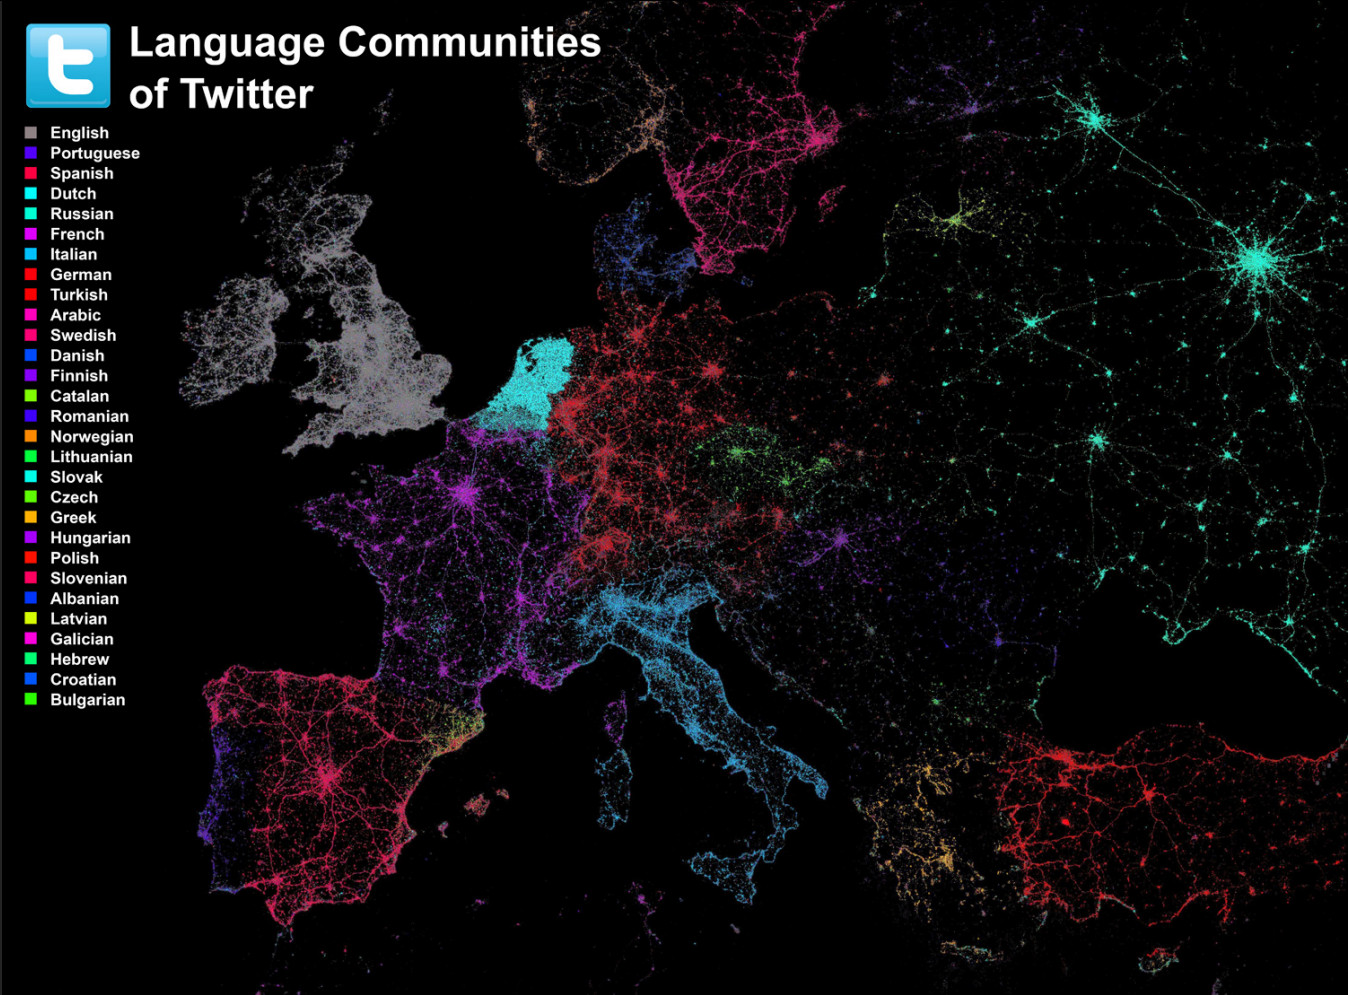 Language communities of Twitter